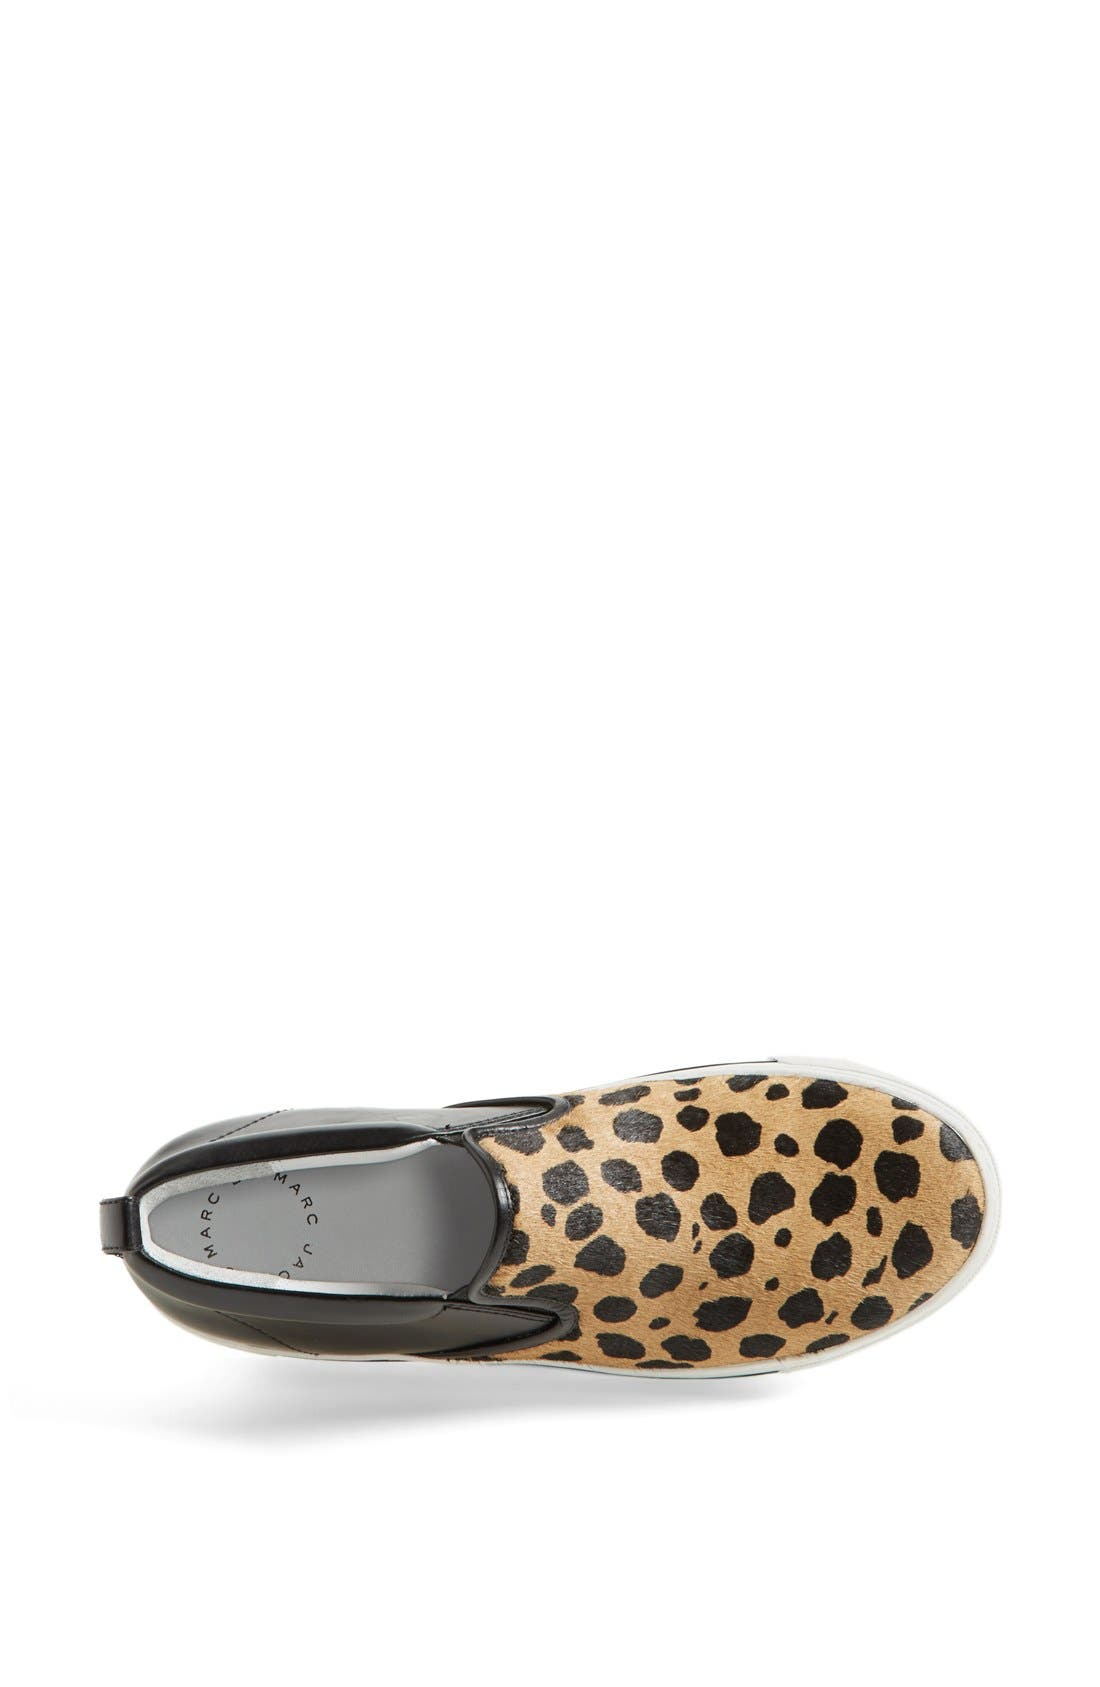 MARC BY MARC JACOBS Leather & Calf Hair Slip-On Sneaker,                             Alternate thumbnail 4, color,